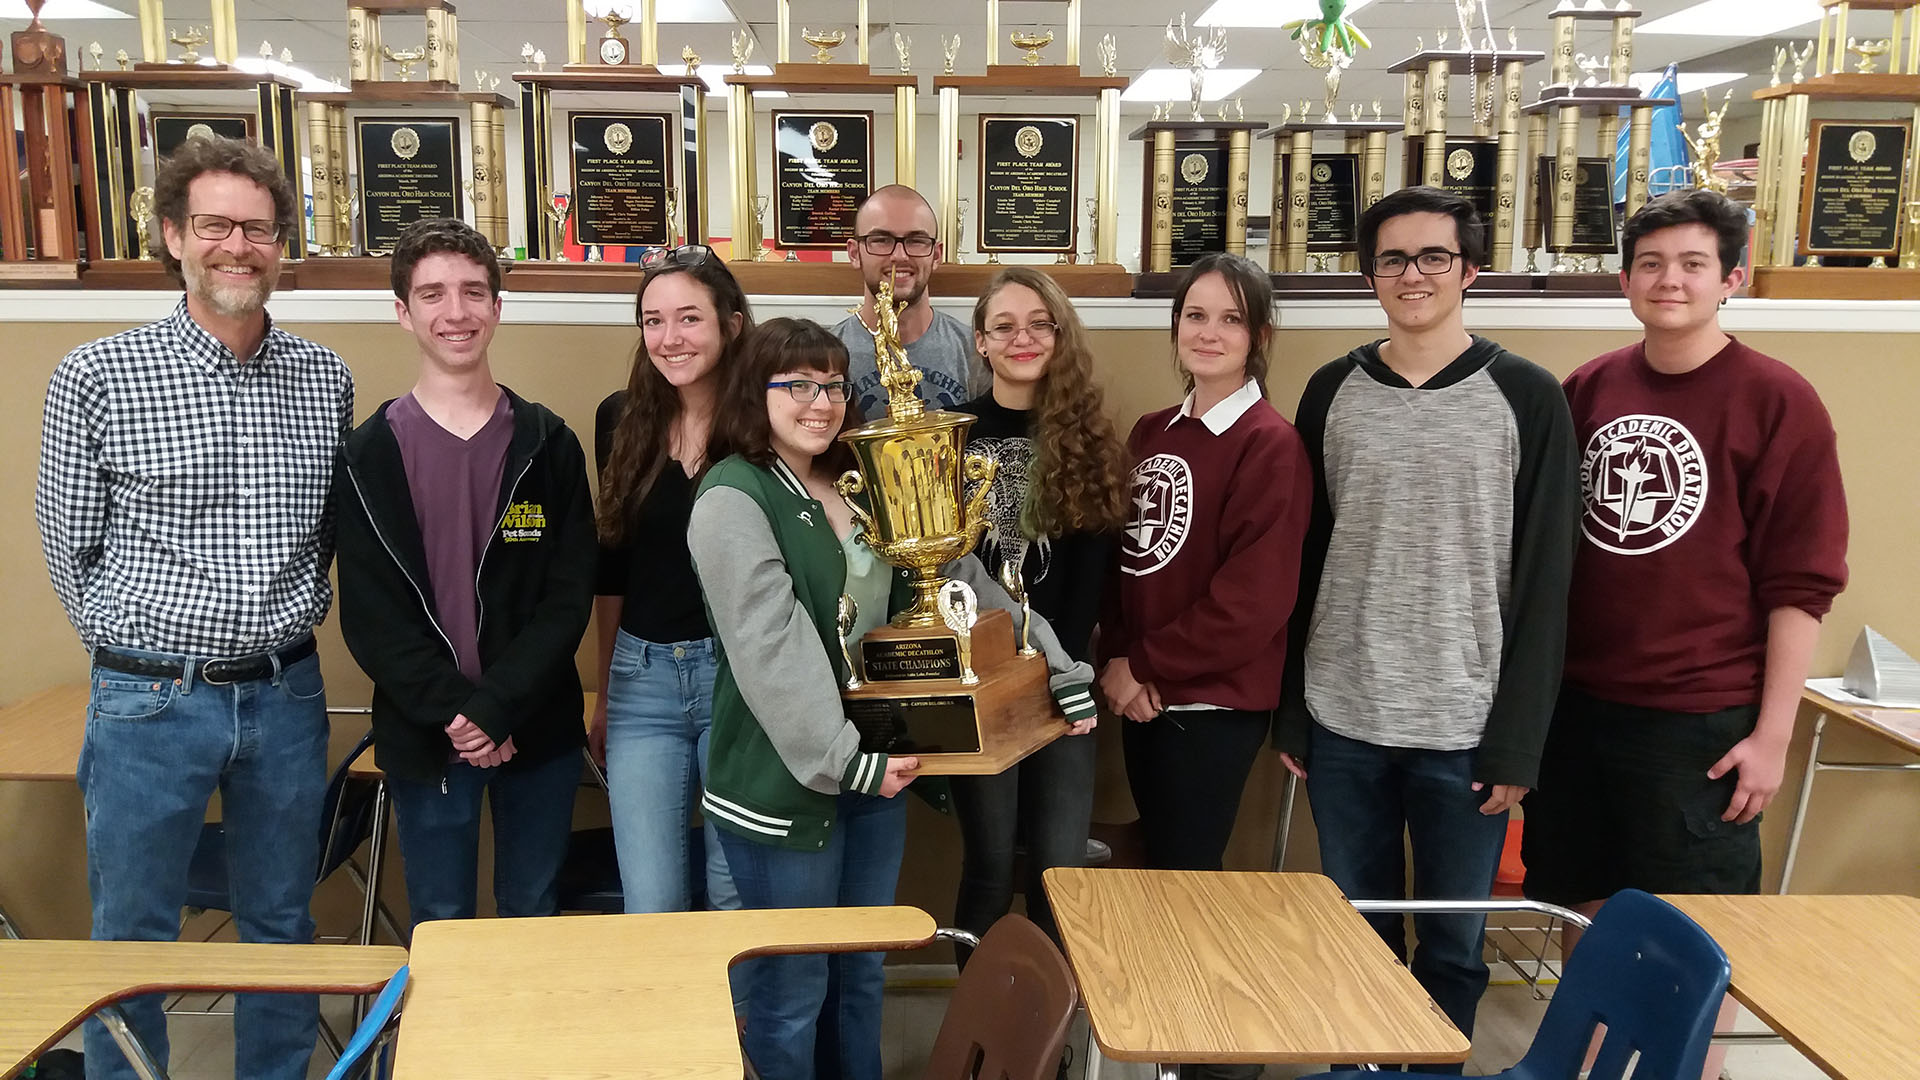 Canyon Del Oro High School's academic decathlon team, from left: Chris Yetman (coach), Brady Lybarger (senior), Chloe Penna (sophomore), Paige Dingman (senior), Albert Windes (junior), Allienna Nezelek (sophomore), Piper Gray (junior), Patrick Carswell (senior), Evan Cuillier (senior).